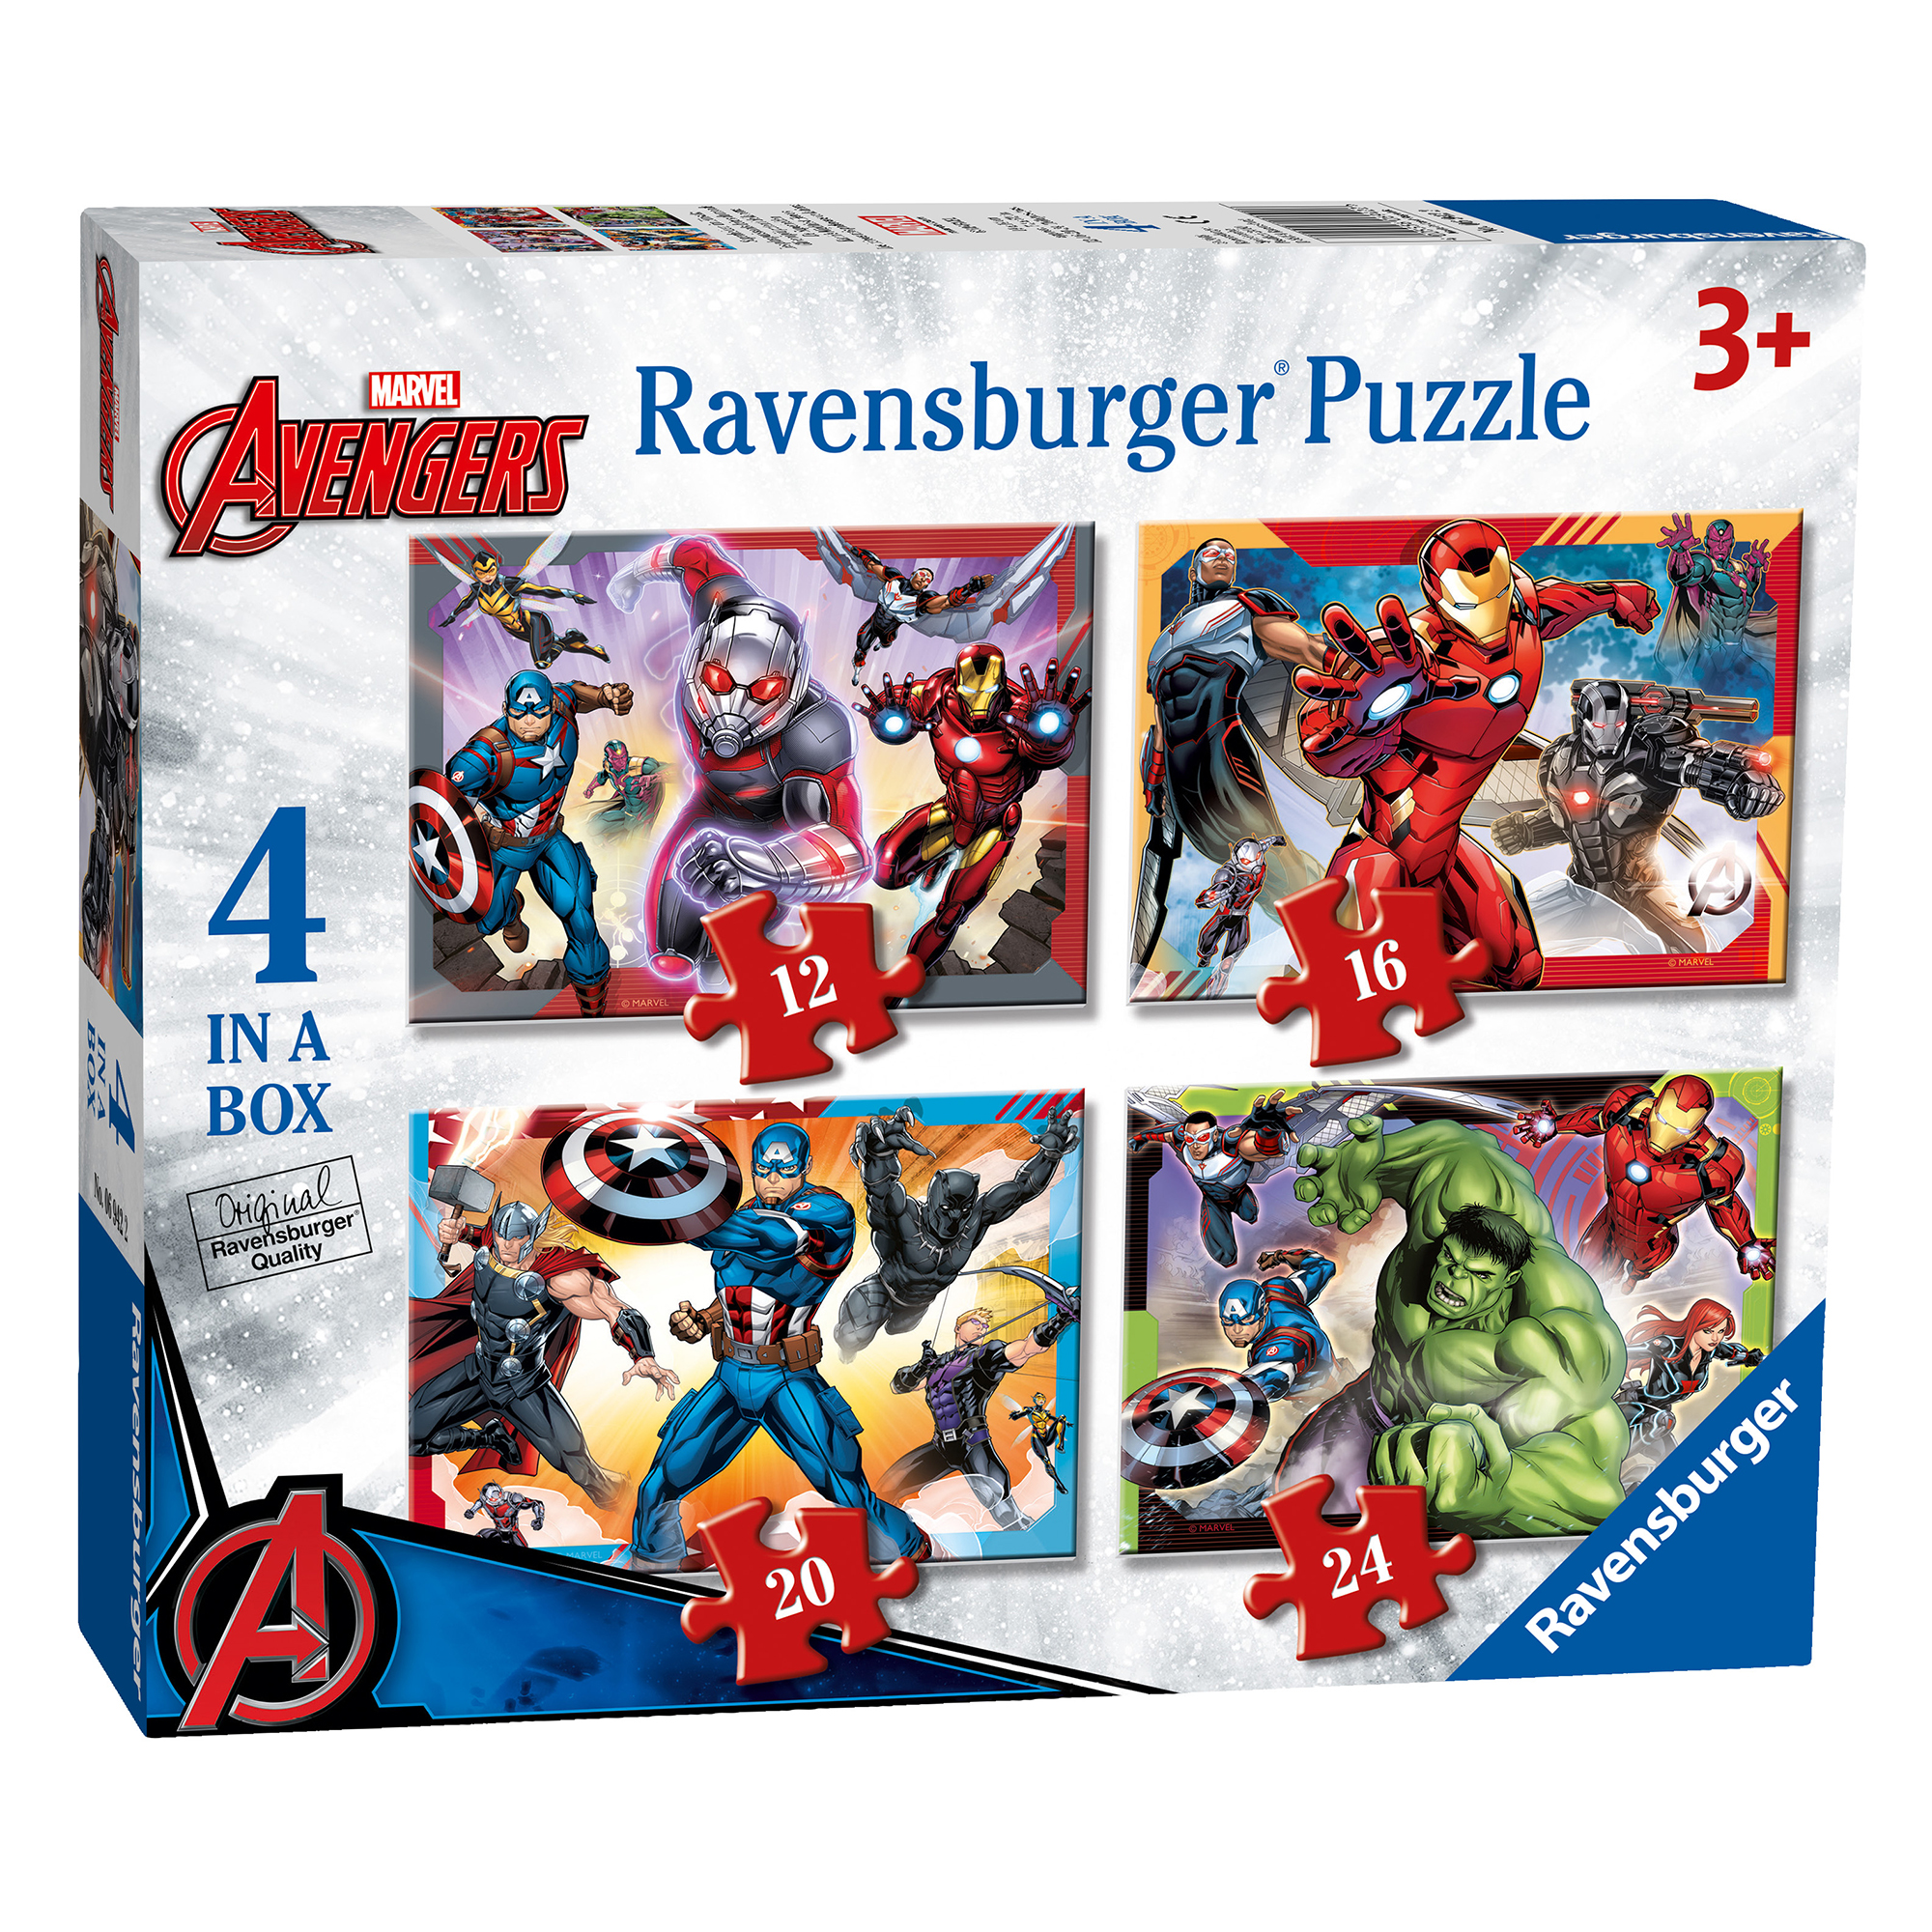 Picture of Ravensburger Marvel Avengers 4 Puzzle Pack